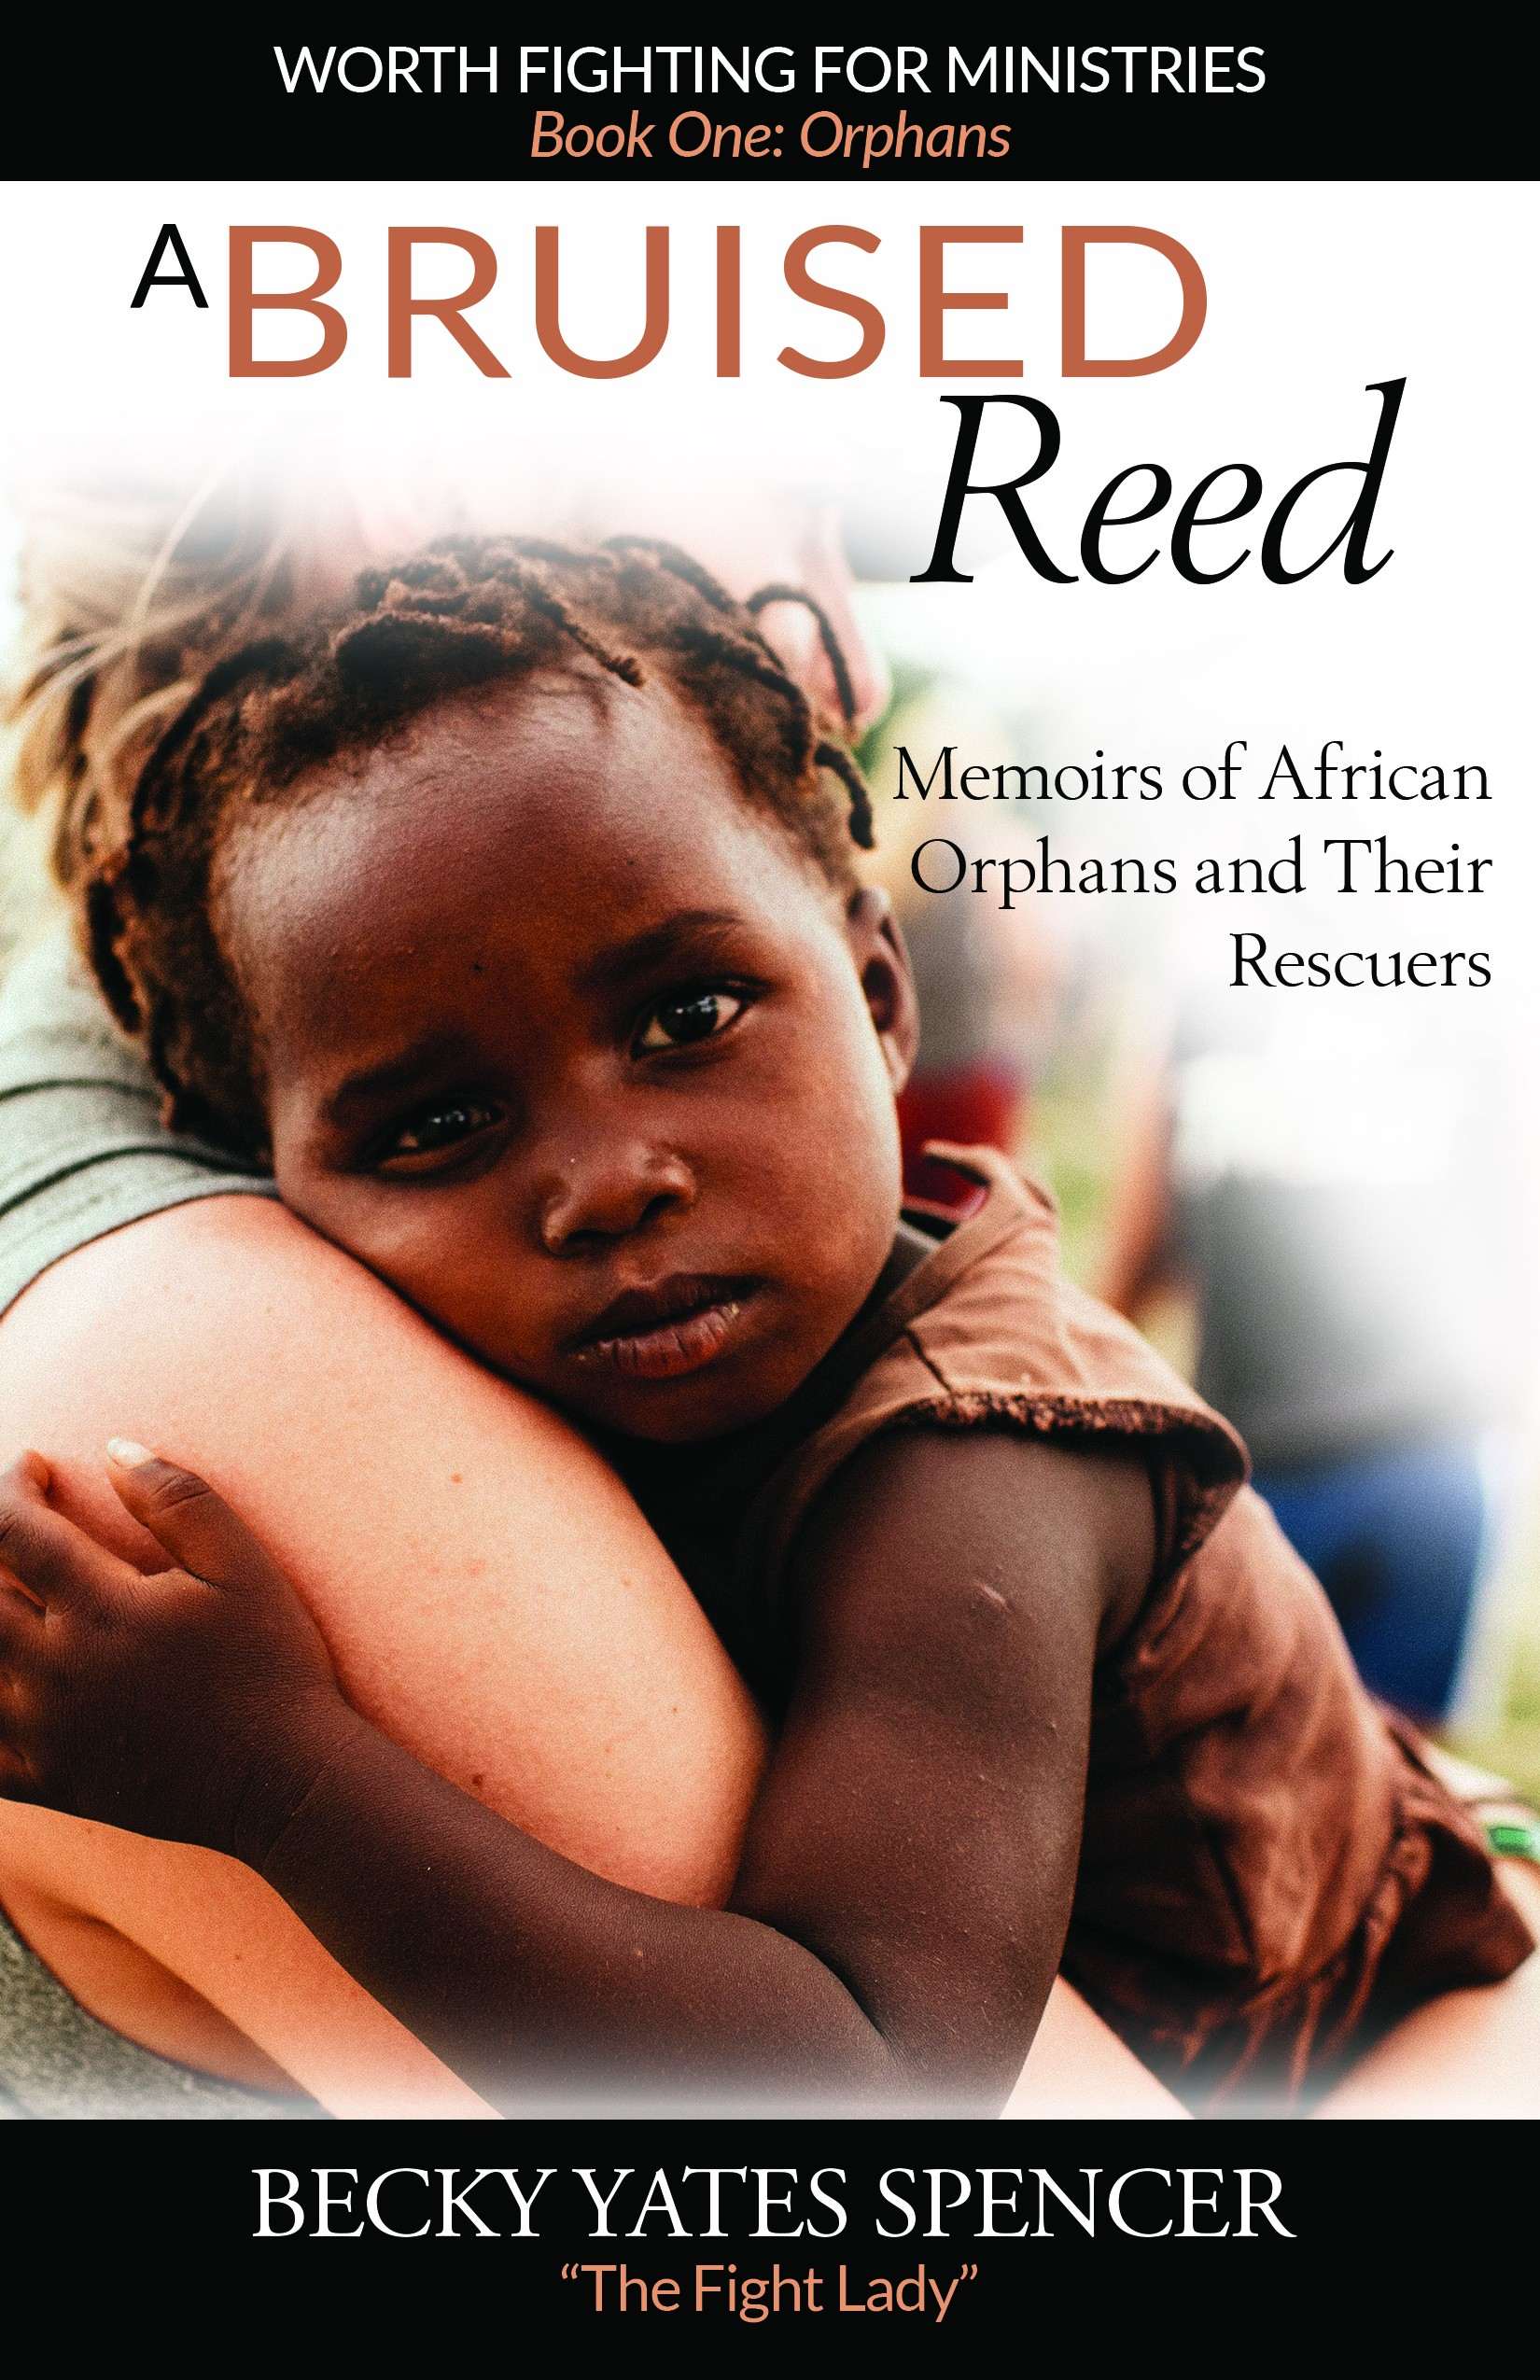 A Bruised Reed: Memoirs of African Orphans and Their Rescuers